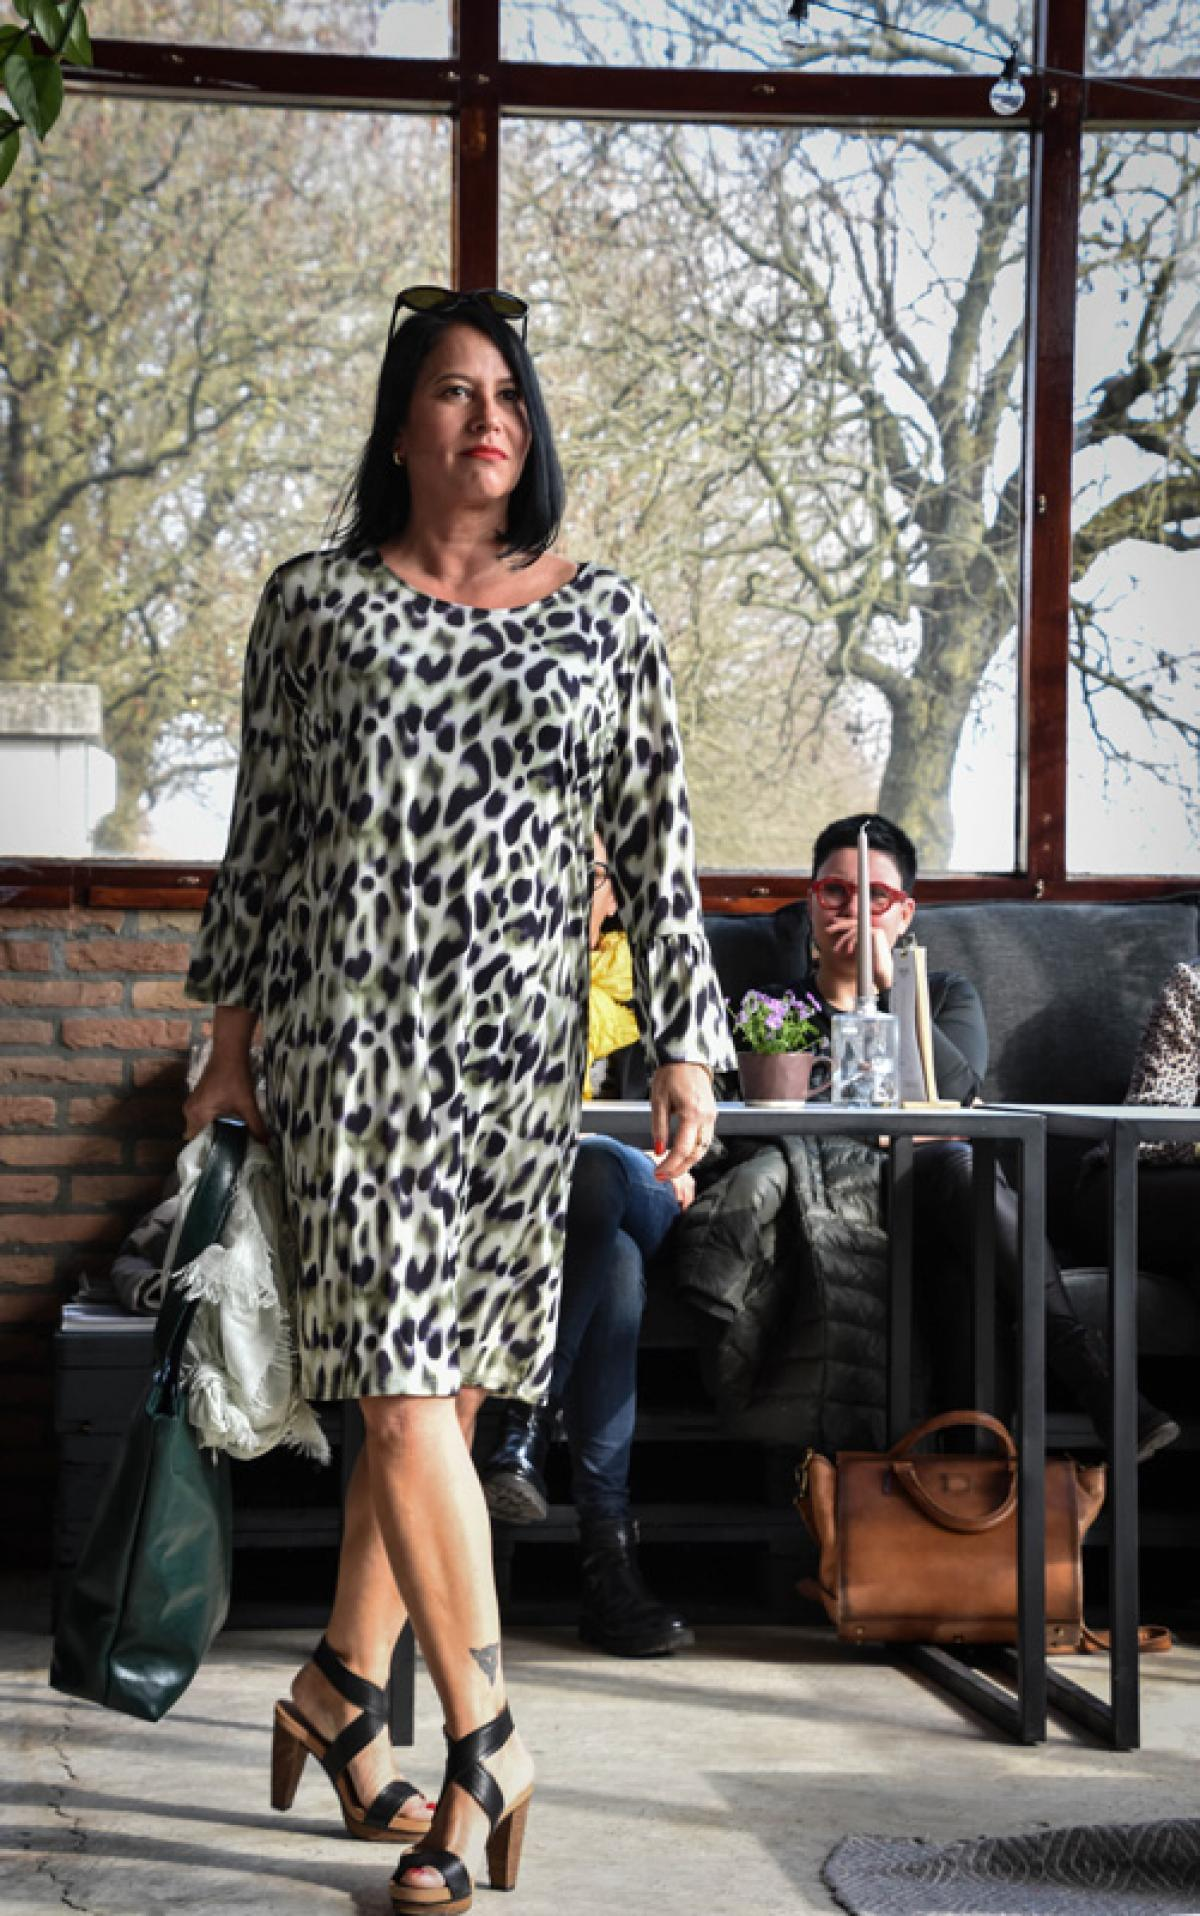 Pand-Zuid  Conceptstore Emmeloord - Modeshow Lente/Zomer 2018